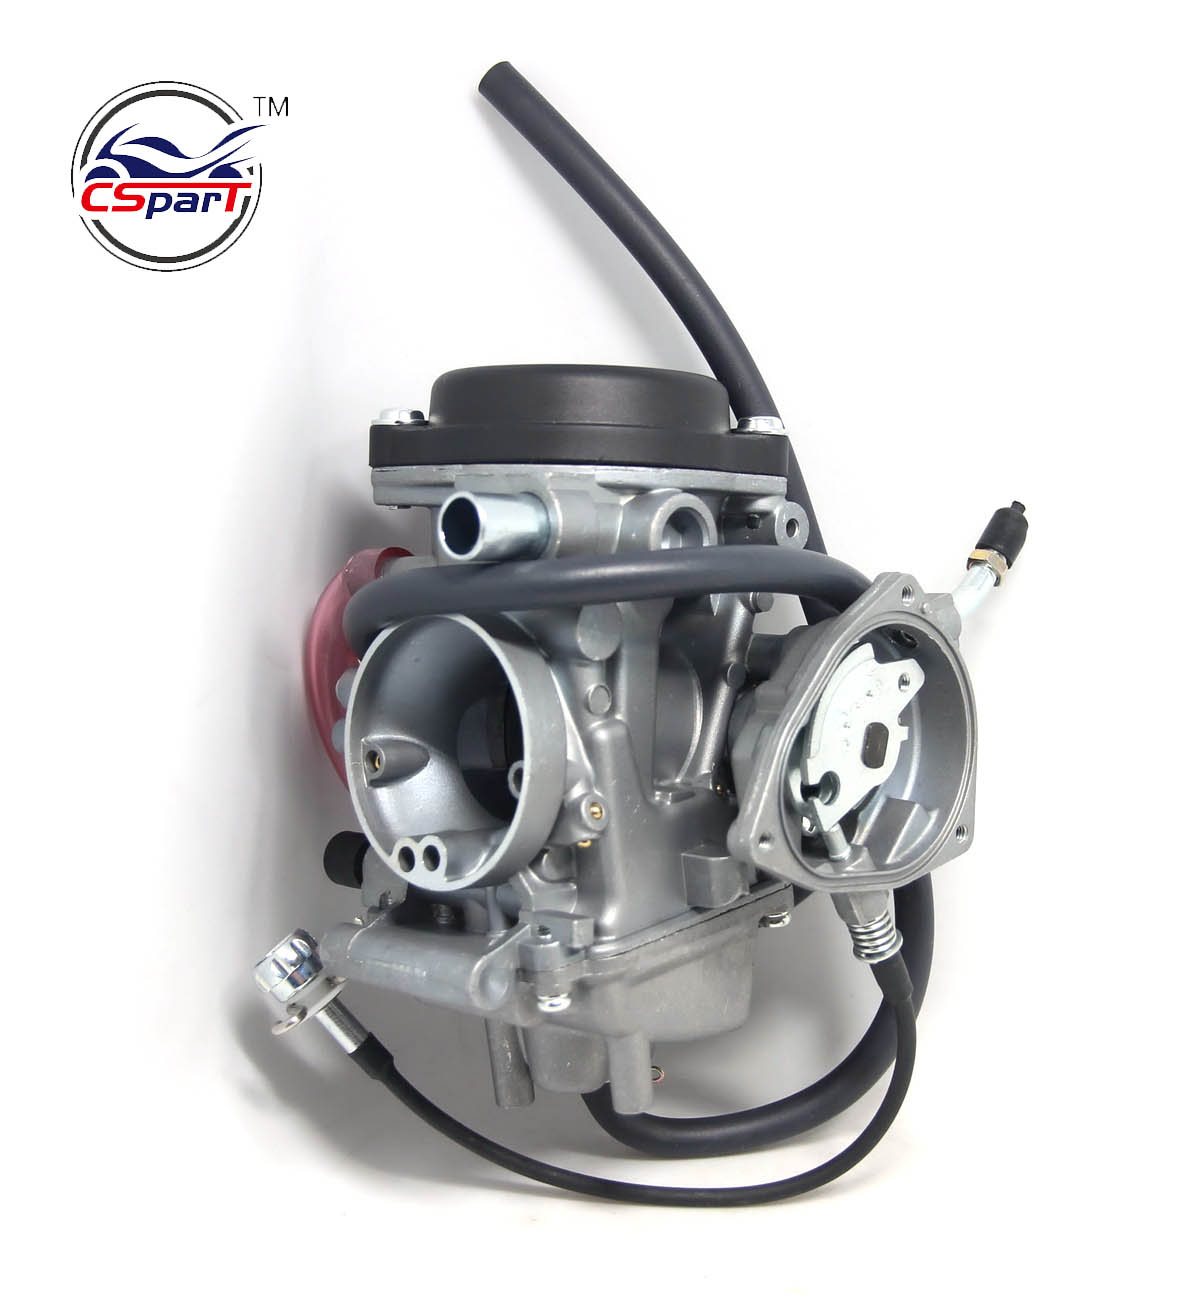 PD33 HISUN 500 500CC ATV QUAD CARBURETOR ASSY HISUN ATV PARTS 16100 F12 1000